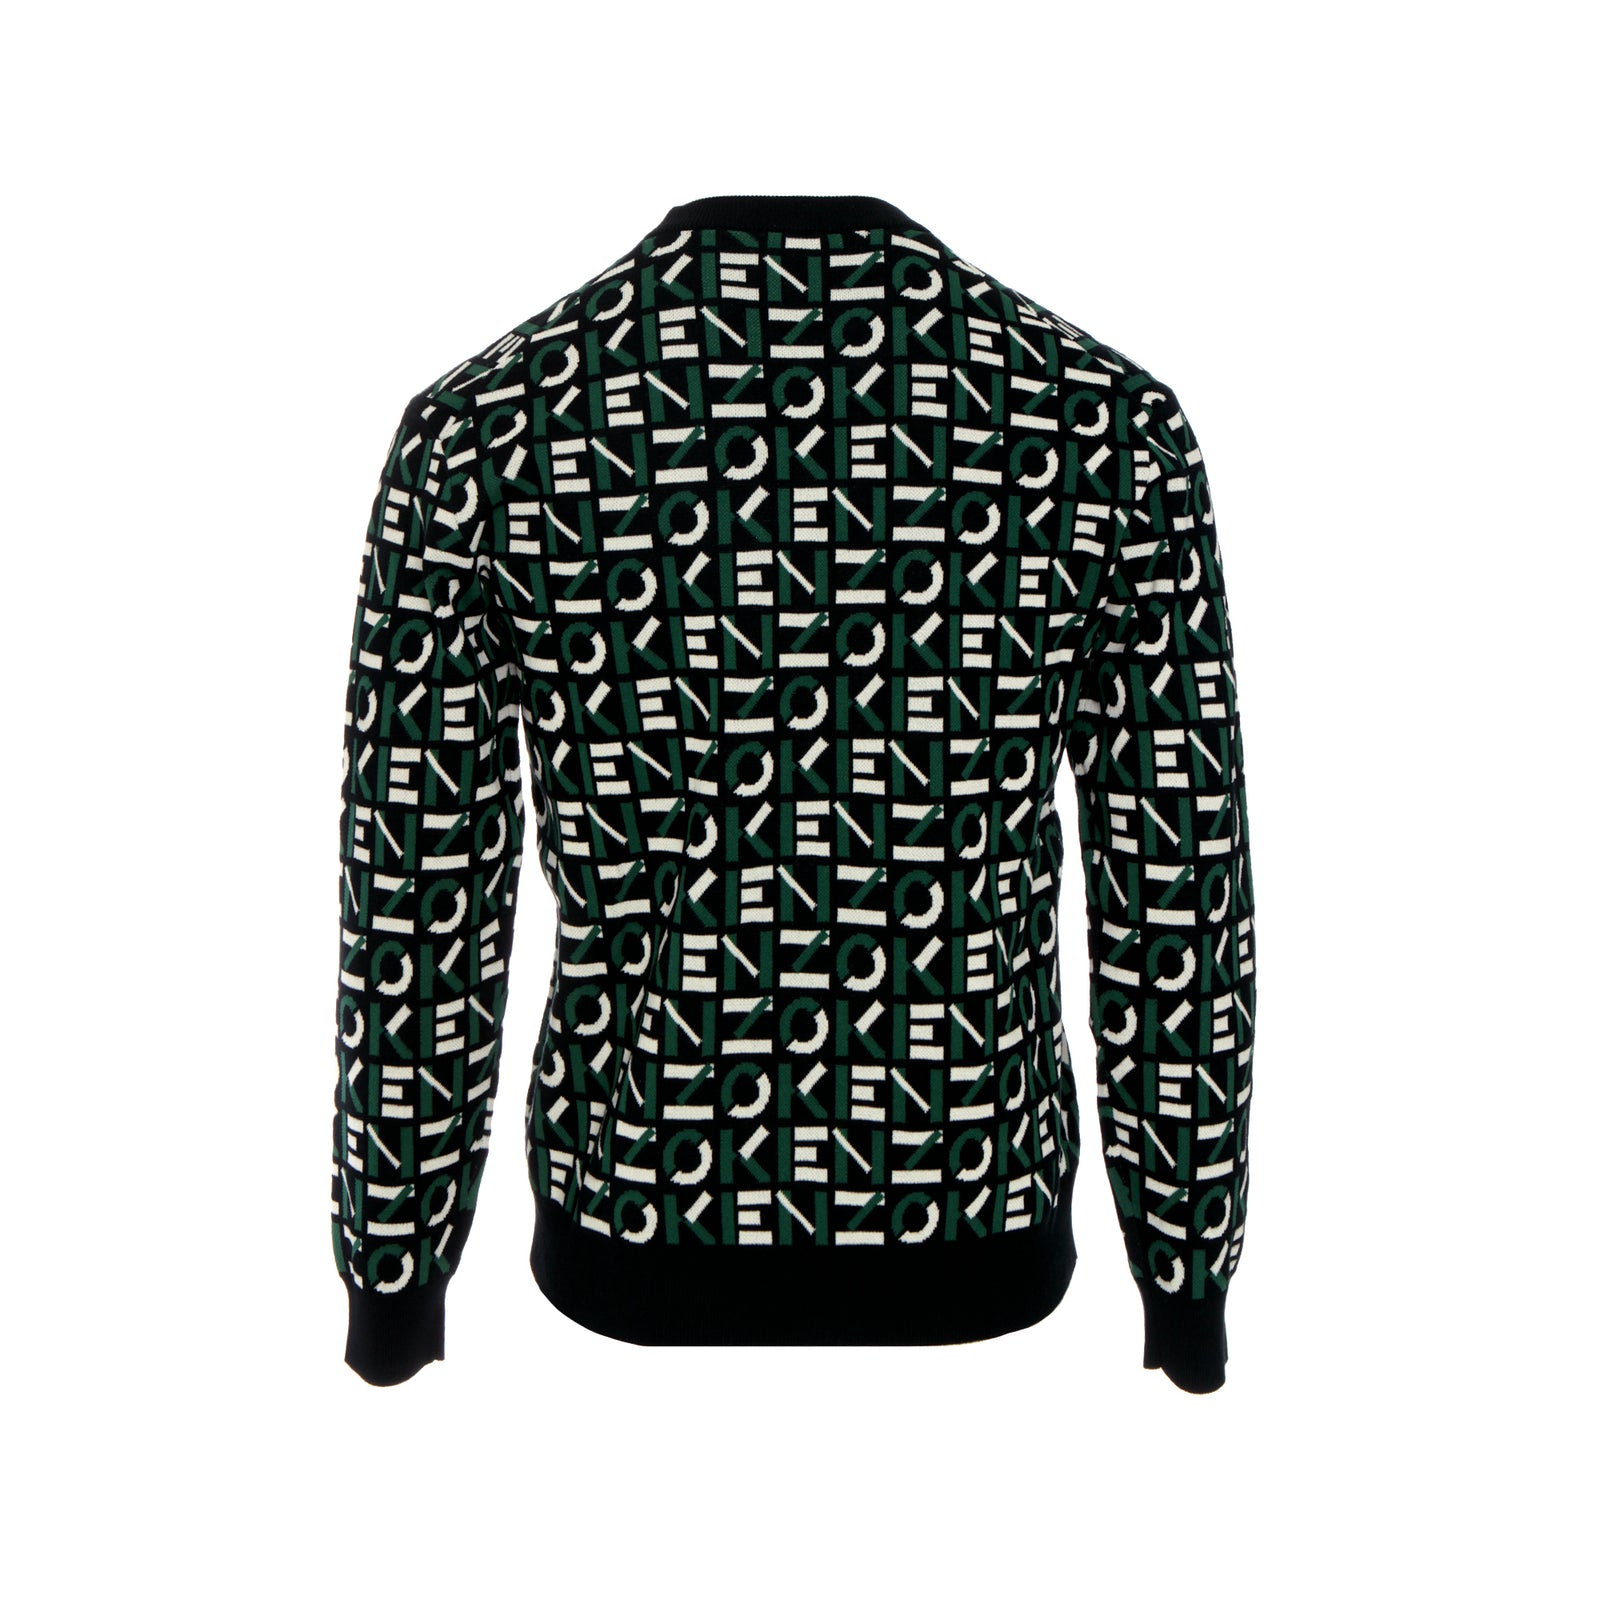 FW20 Kenzo Pairs Sport Small Scale Men's Jumper